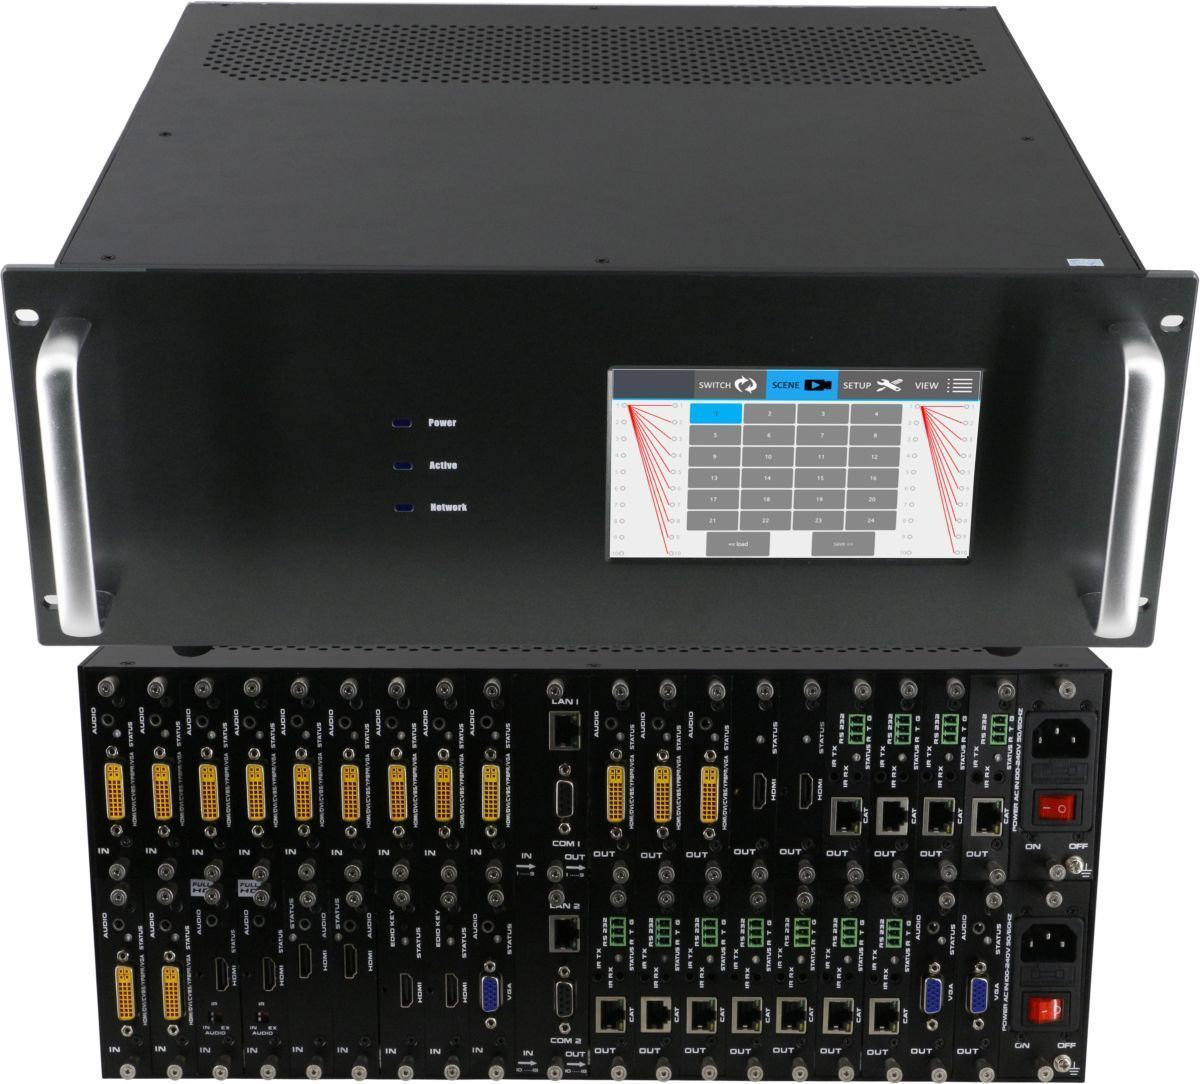 4K 14x12 HDMI Matrix Switcher with Color Touchscreen